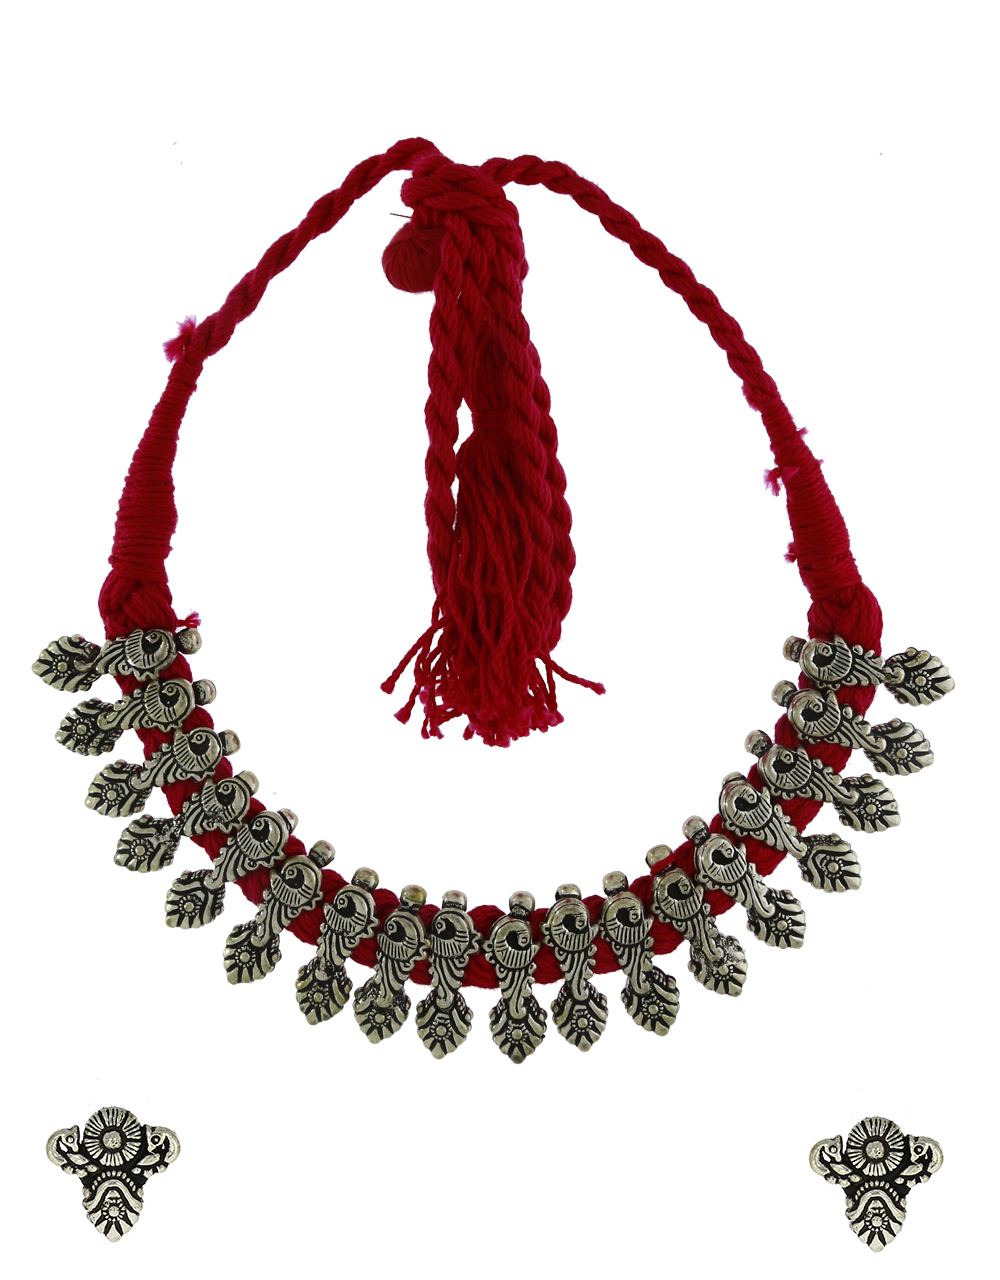 Rani Pink Colour Designer Thread Necklace Traditional Choker Necklace